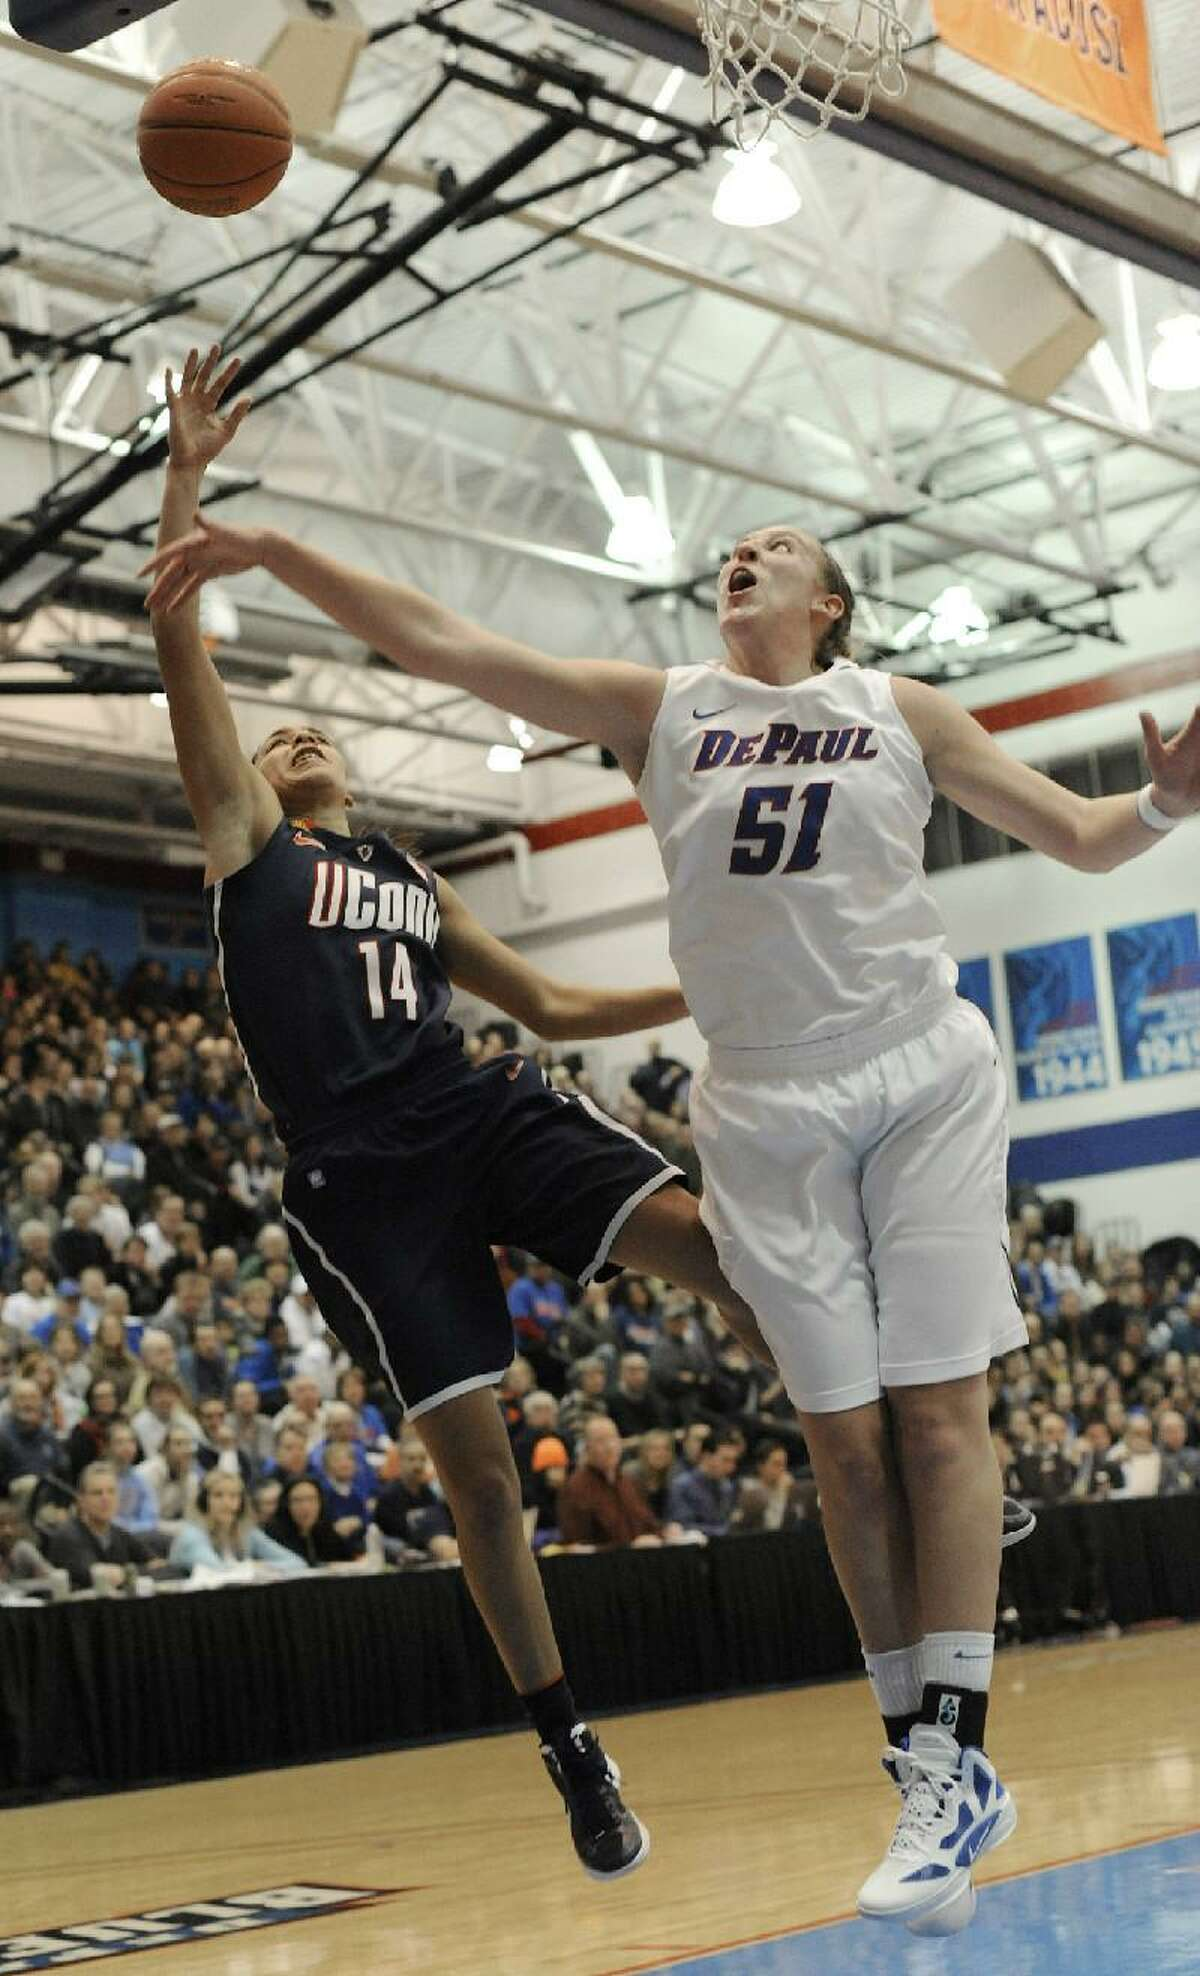 ASSOCIATED PRESS Connecticut's Bria Hartley left, goes up for a shot against DePaul's Katherine Harry right, in the first half during Saturday's game in Chicago. The Huskies won 88-44.